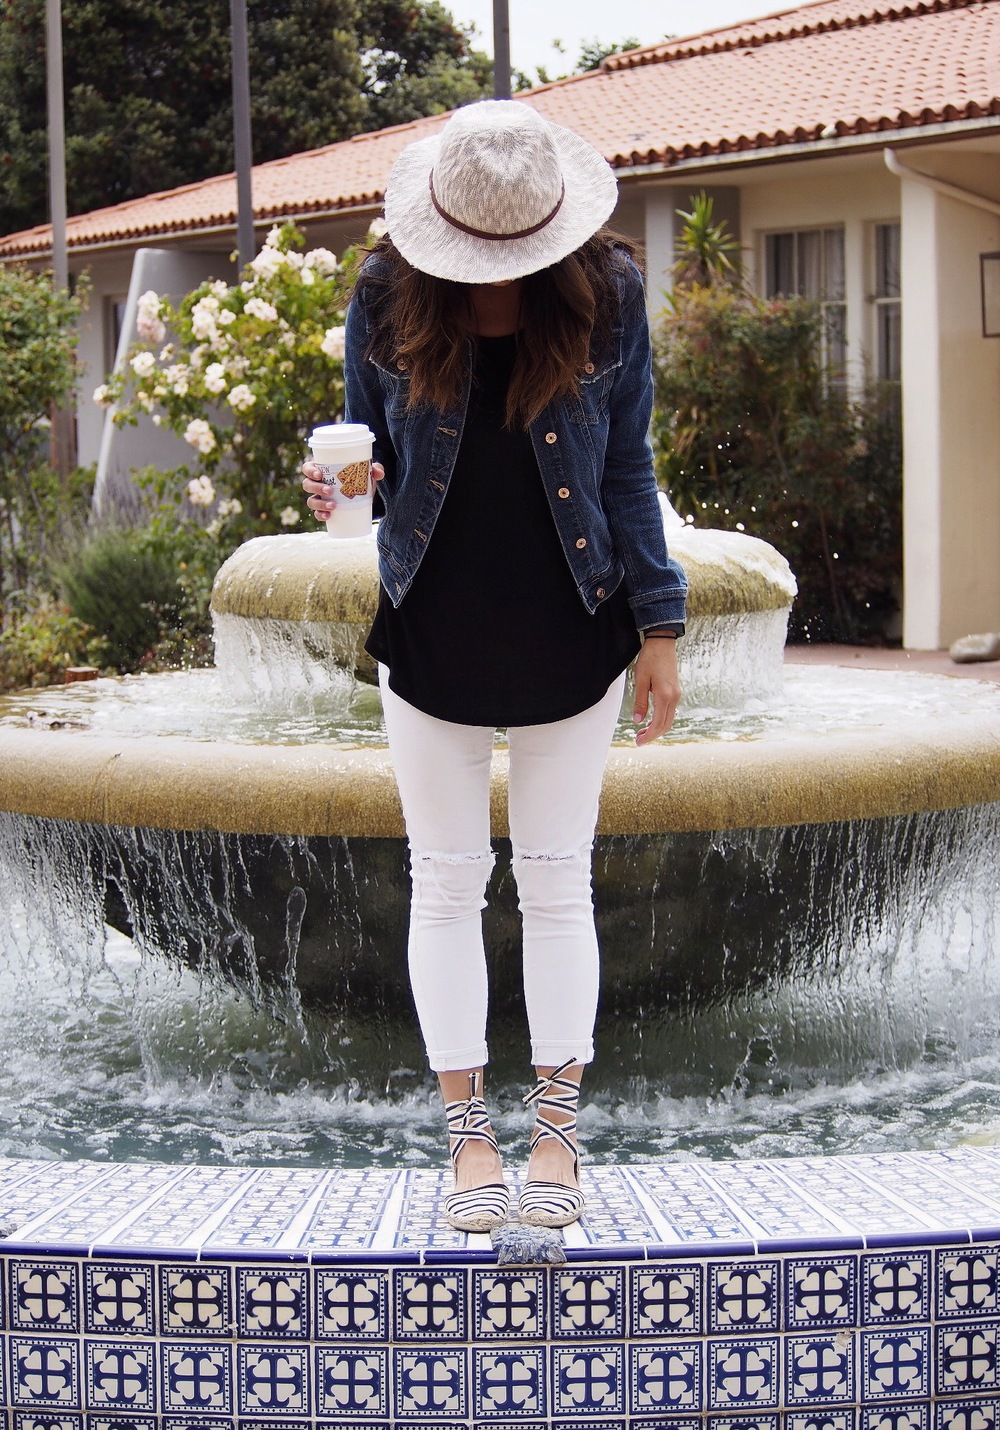 Hat: Hinge. Shirt: Target. Jacket: Zara. Pants: Old. Similar at Topshop. Shoes: Soludos.